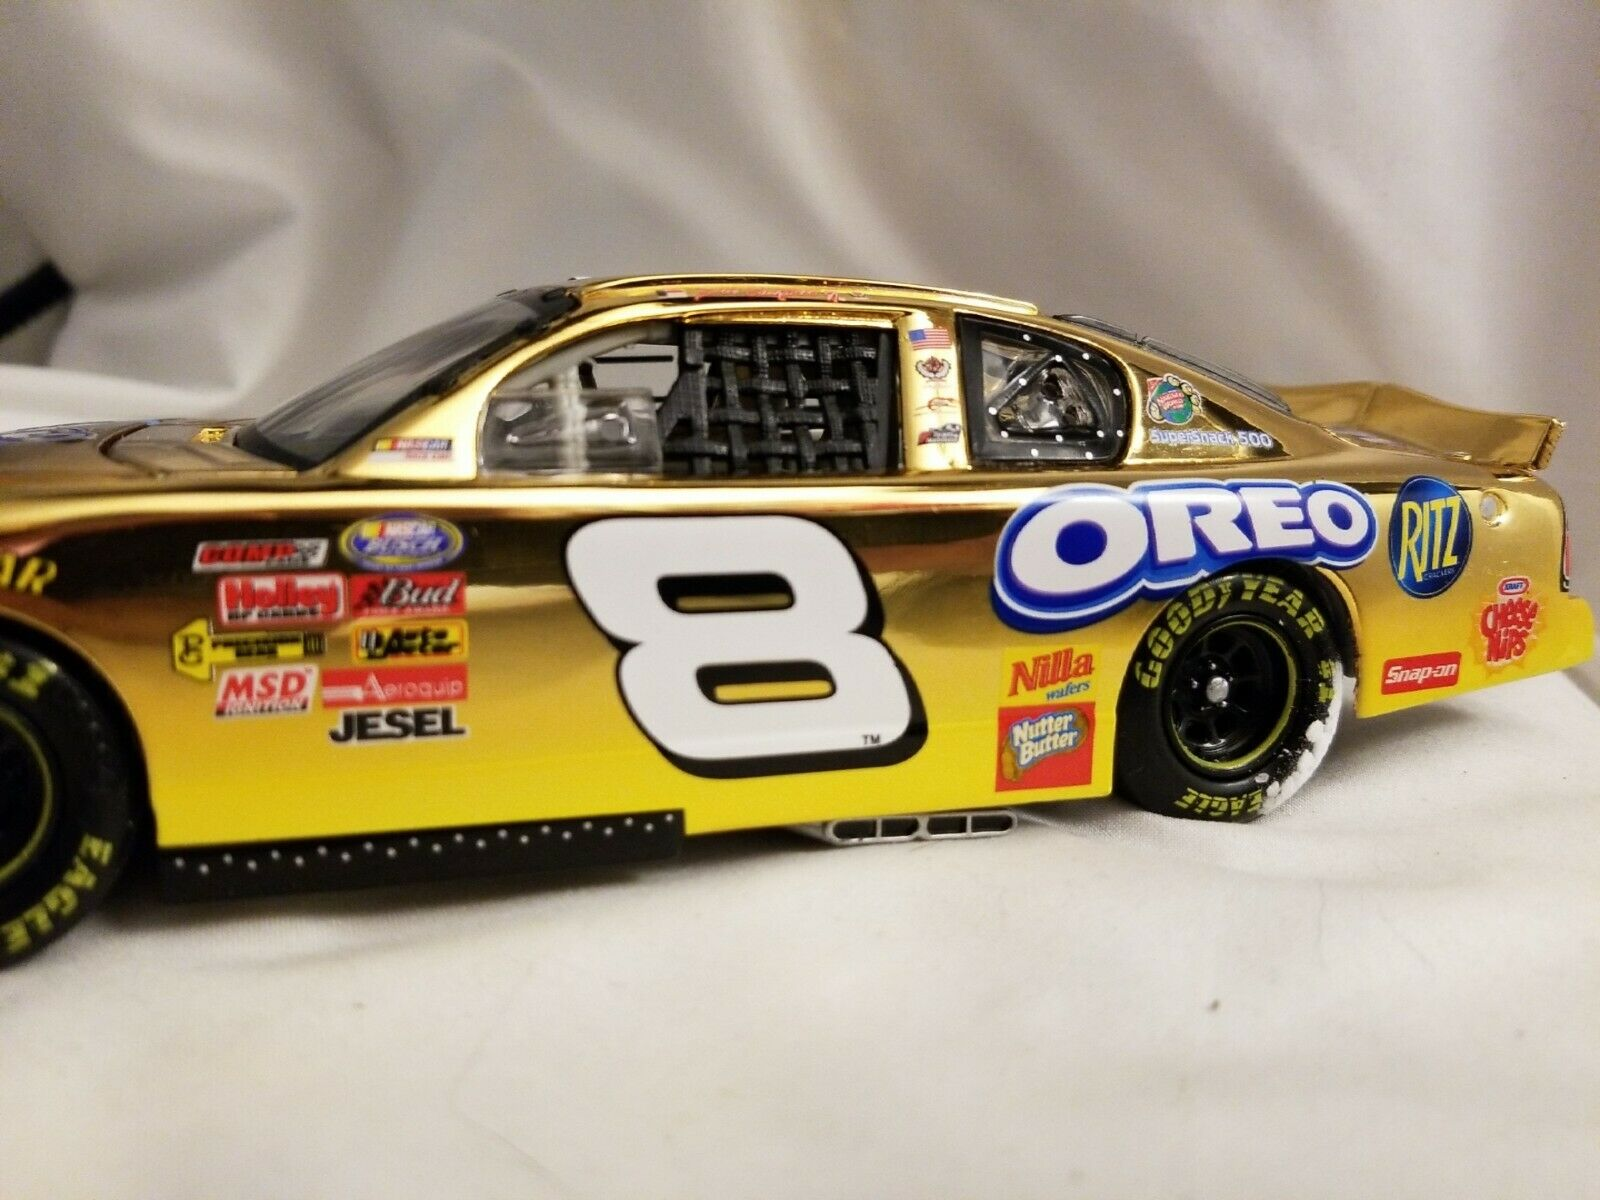 Dale Earnhardt Jr Ritz Oreo Monte Carlo 1 24 24Kt gold Limited Edition RFO